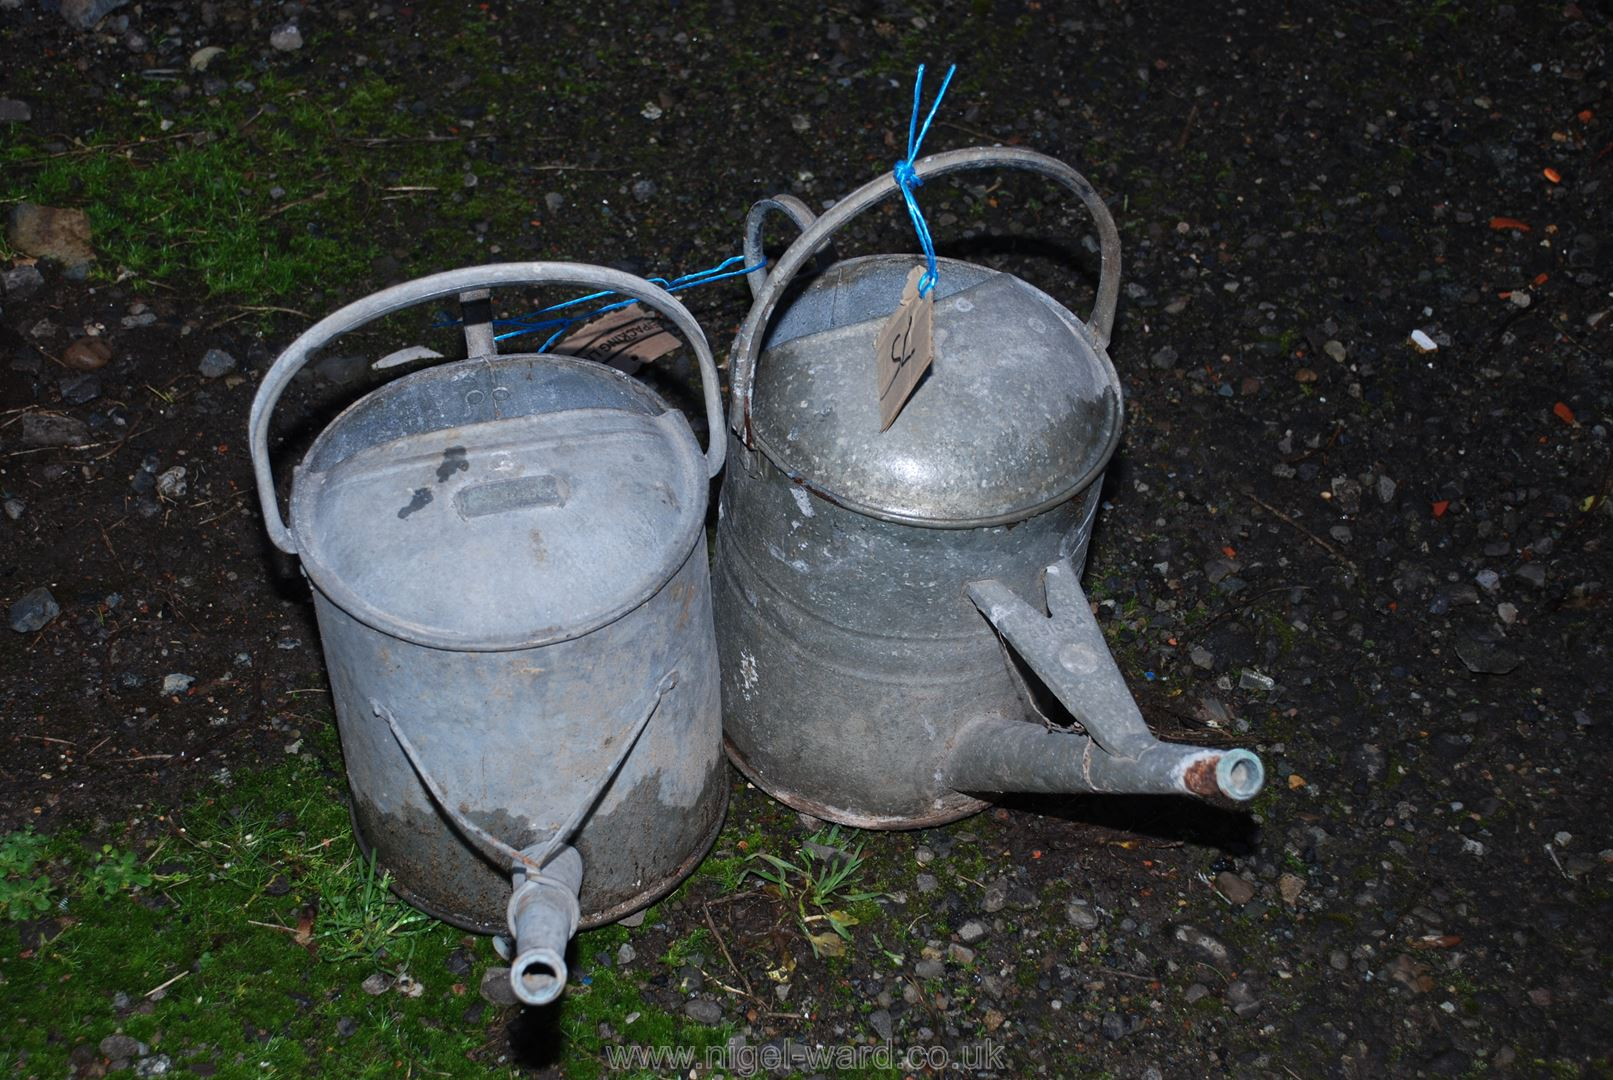 Two galvanised watering cans.